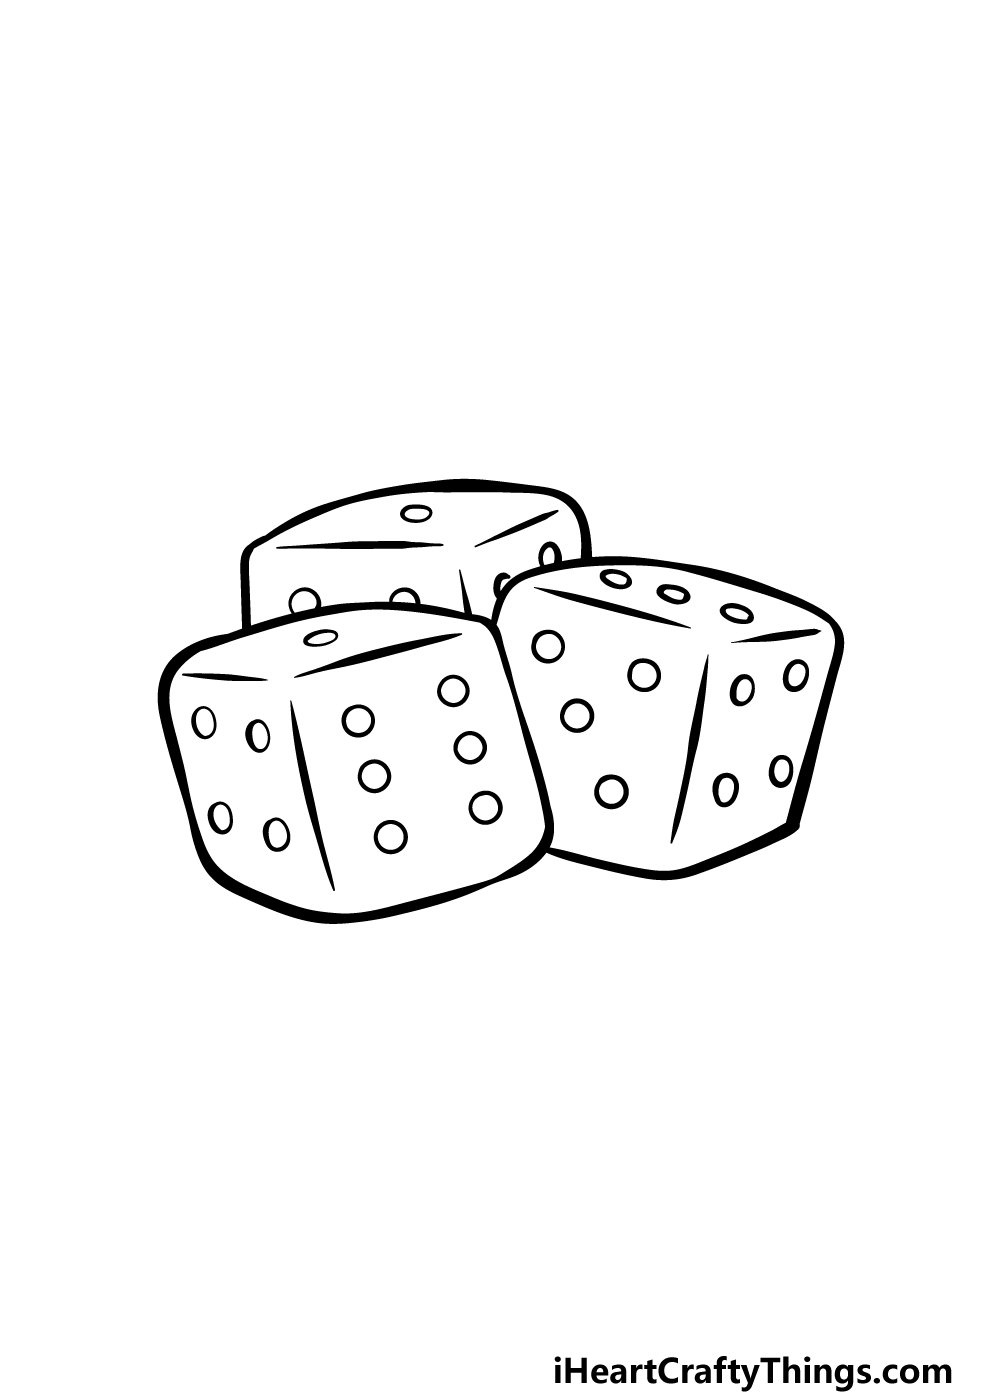 drawing the dice step 5